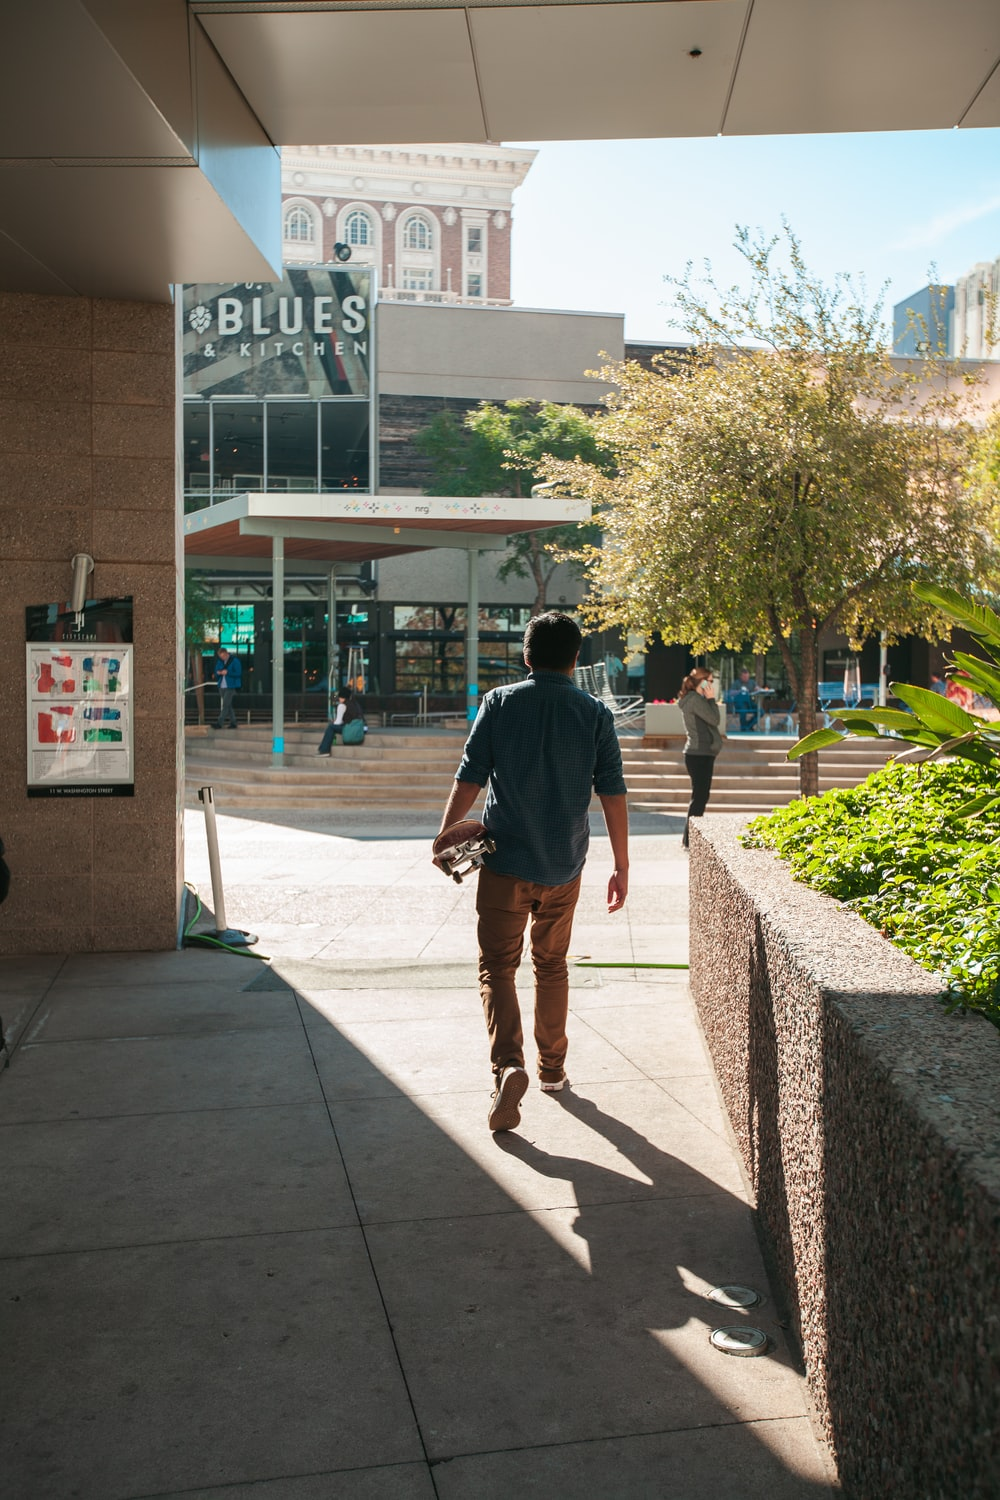 man in gray shirt walking by building during daytime